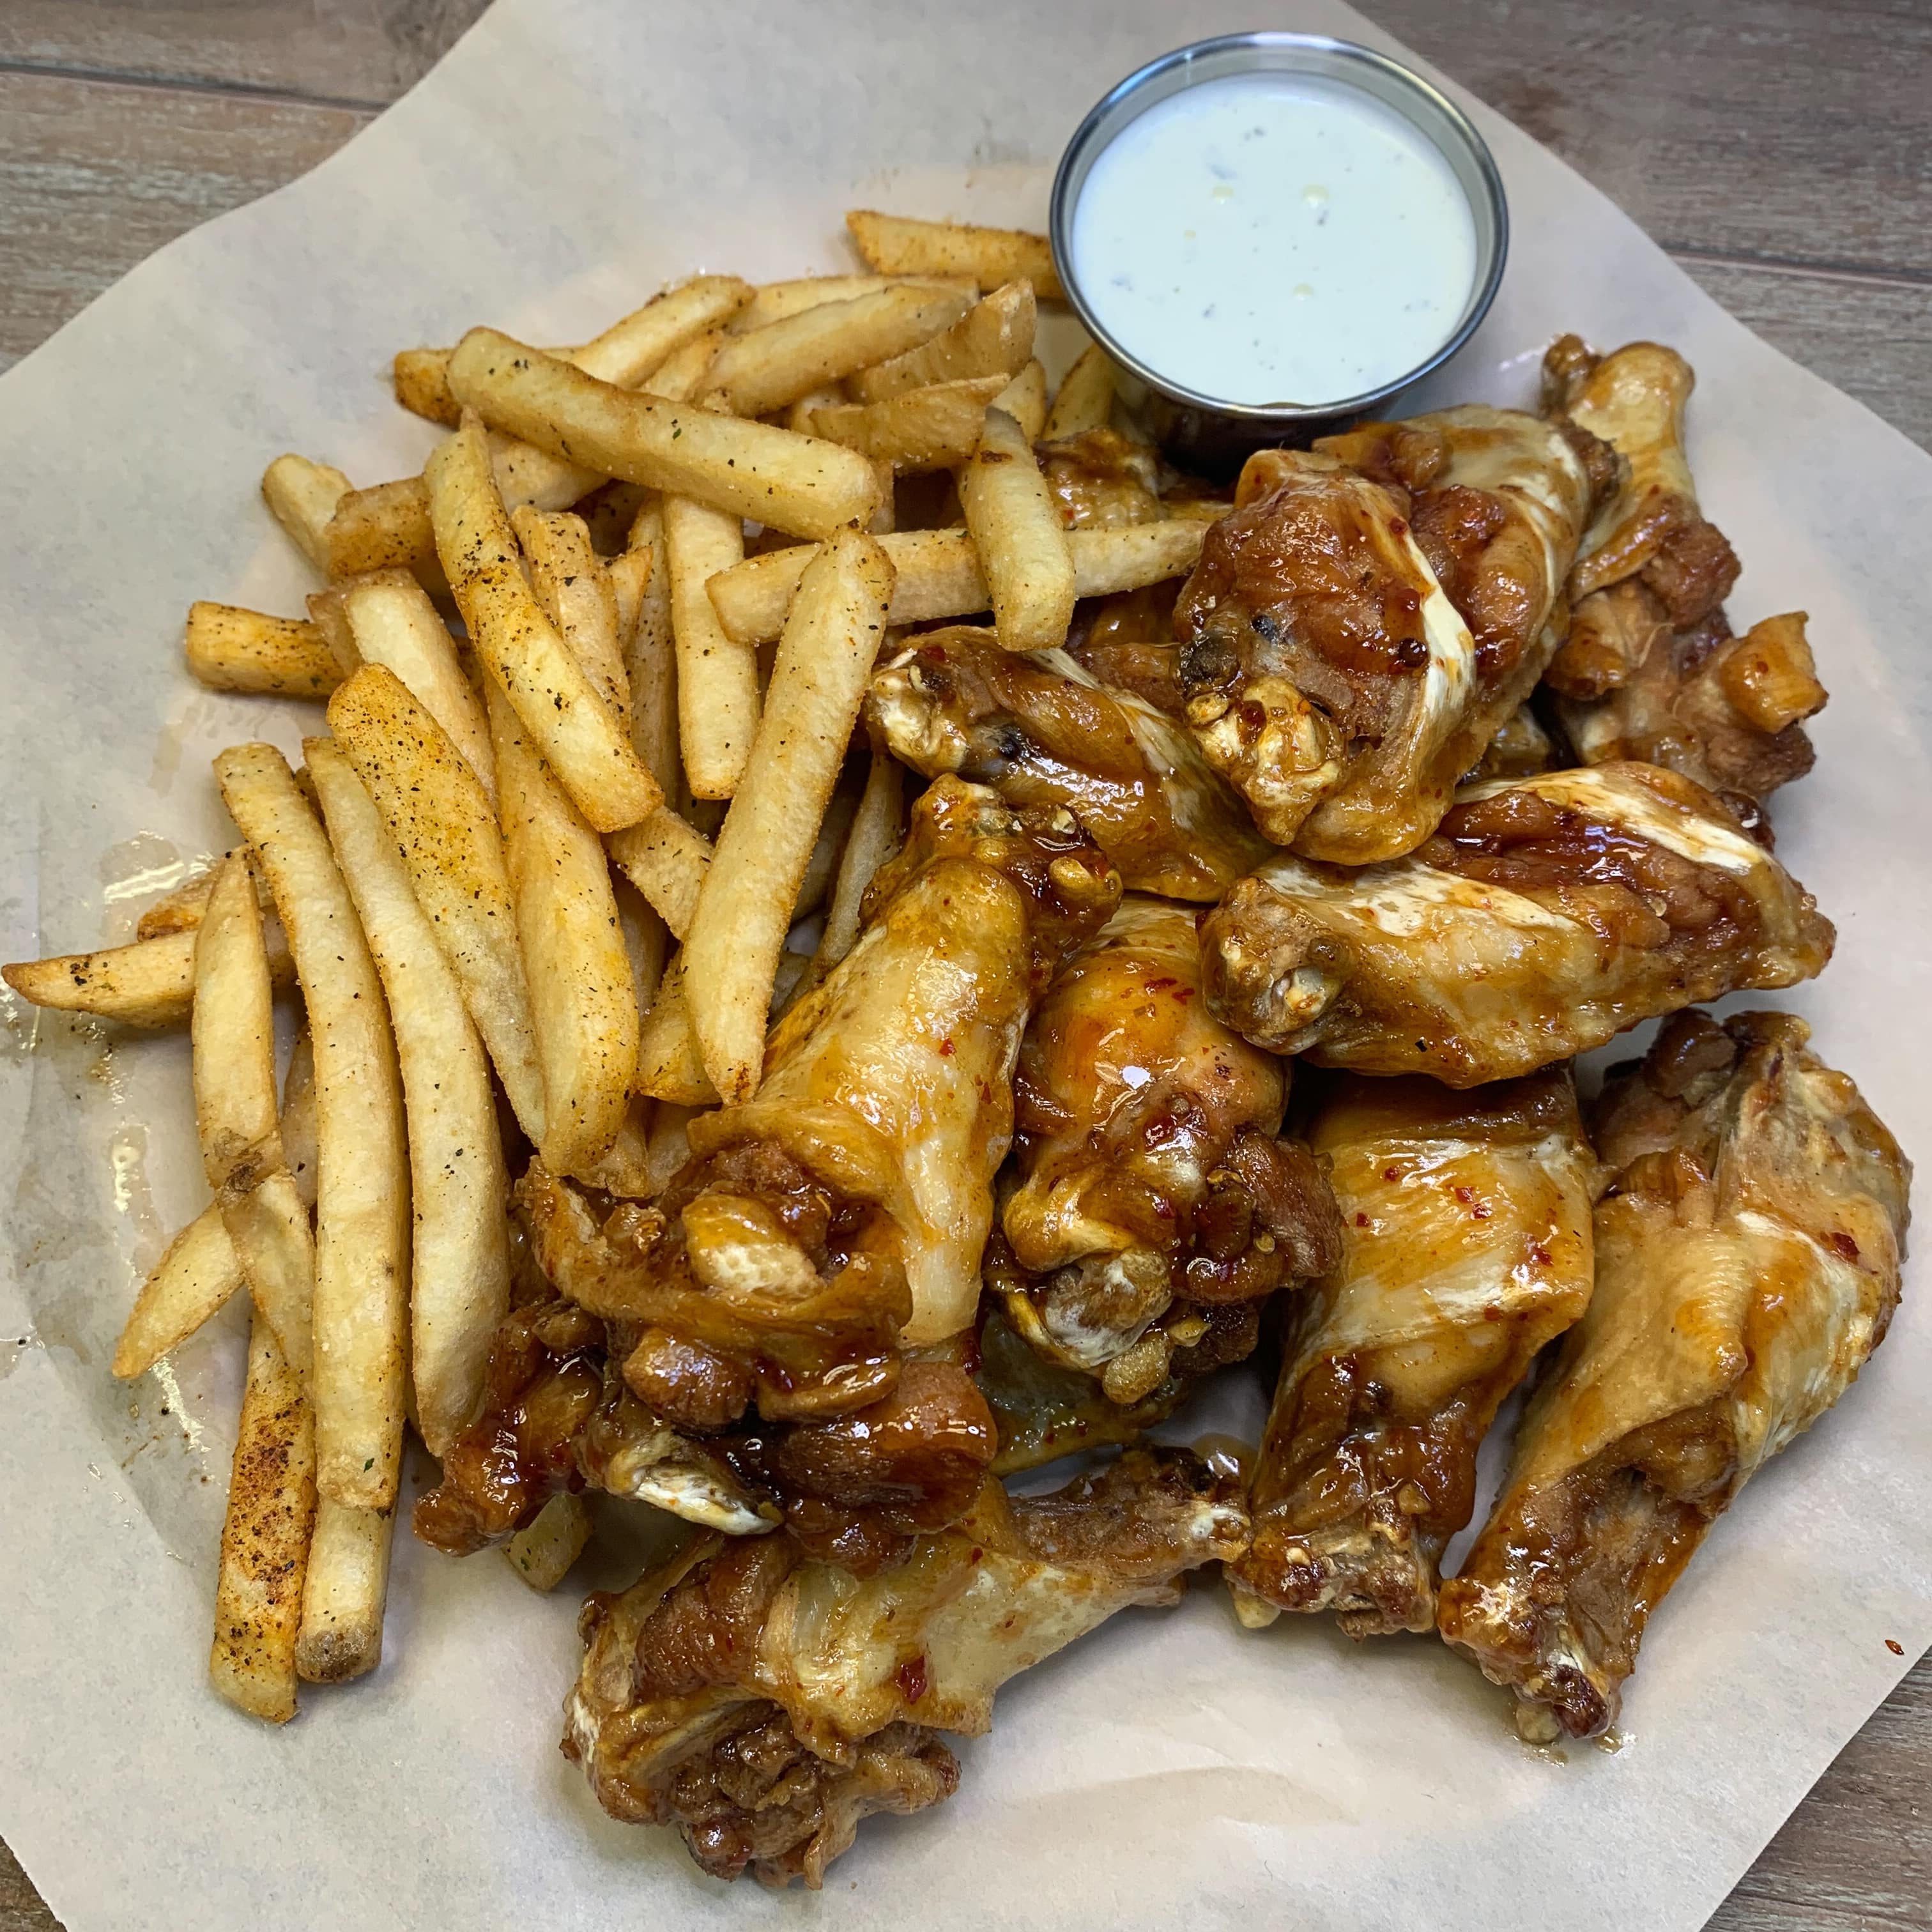 Wings and fries with a side of ranch